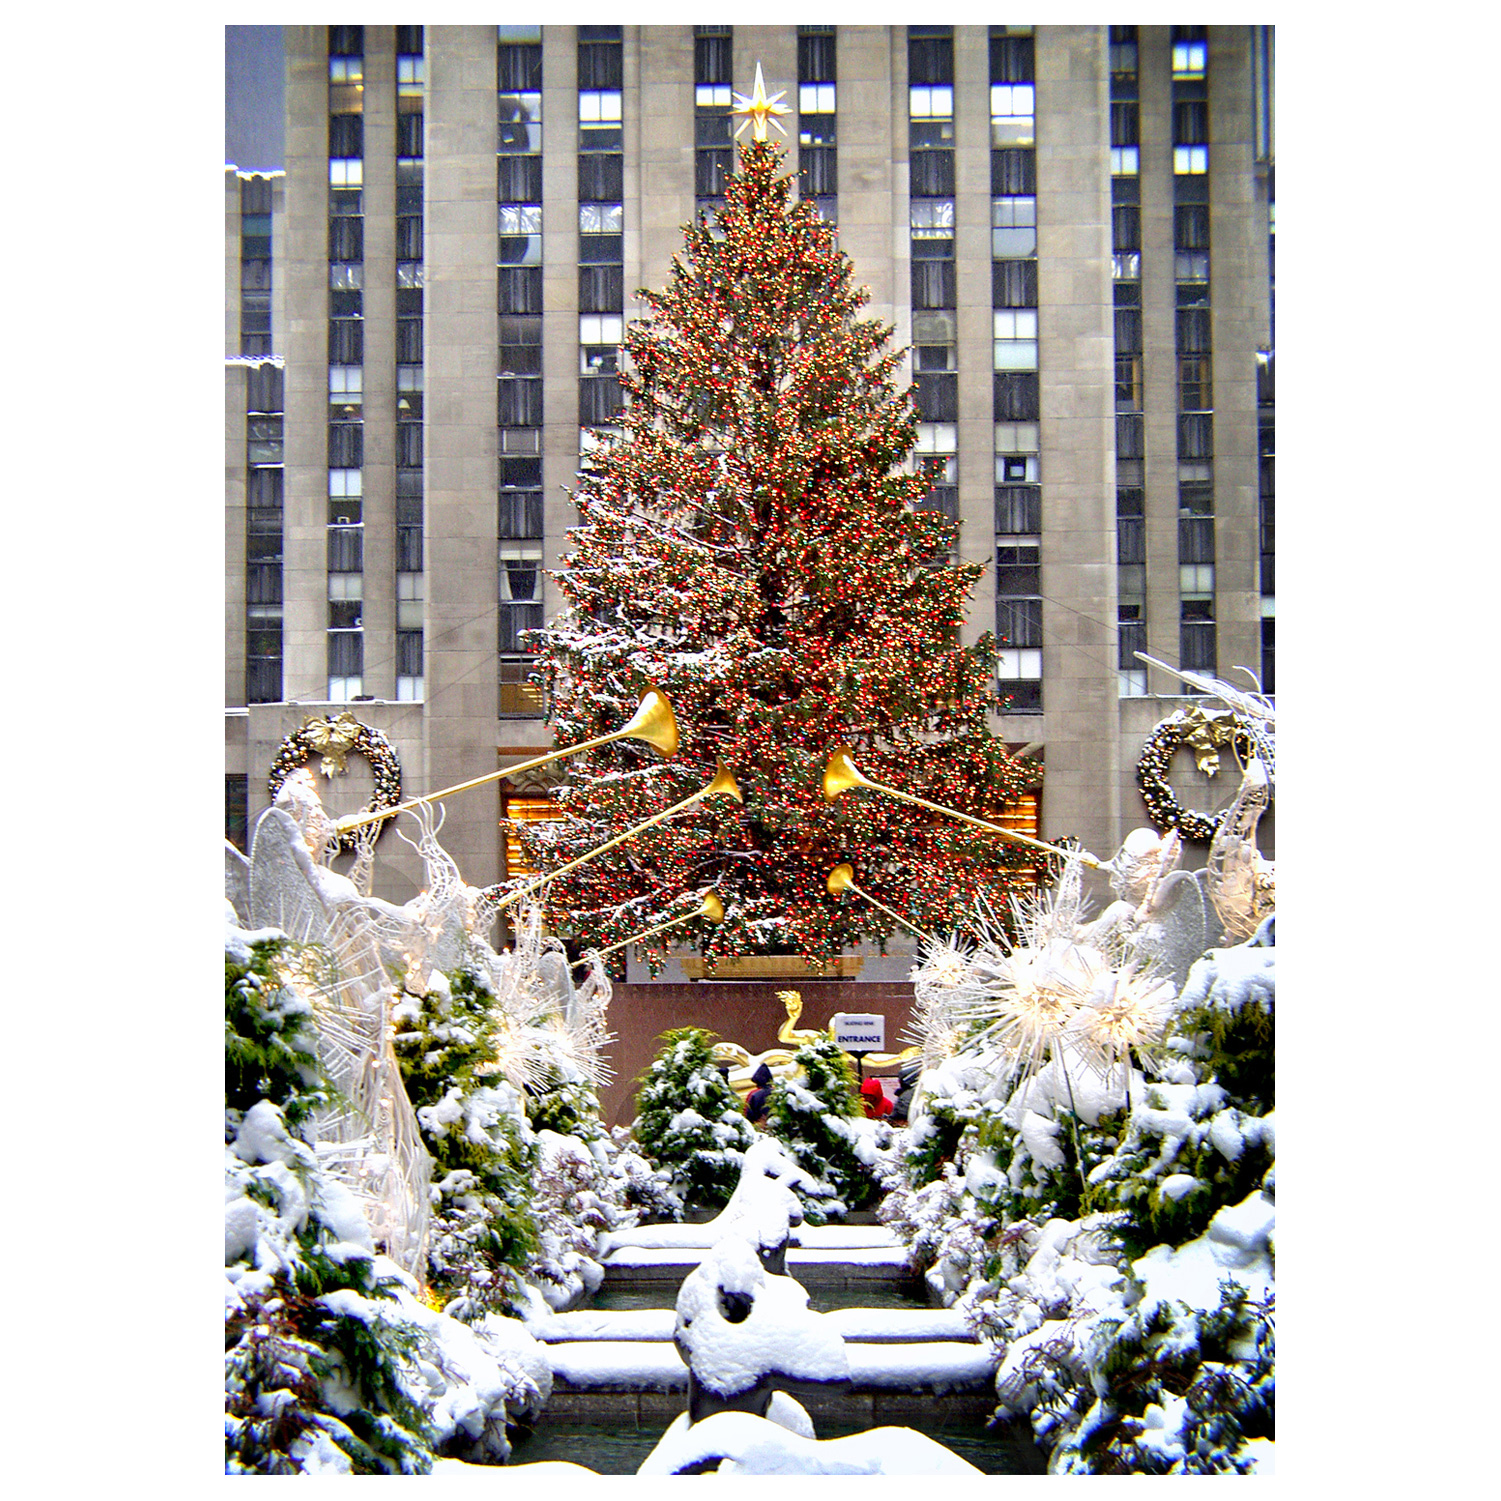 Rockefeller Center Christmas Tree New York - NYC Christmas Boxed ...